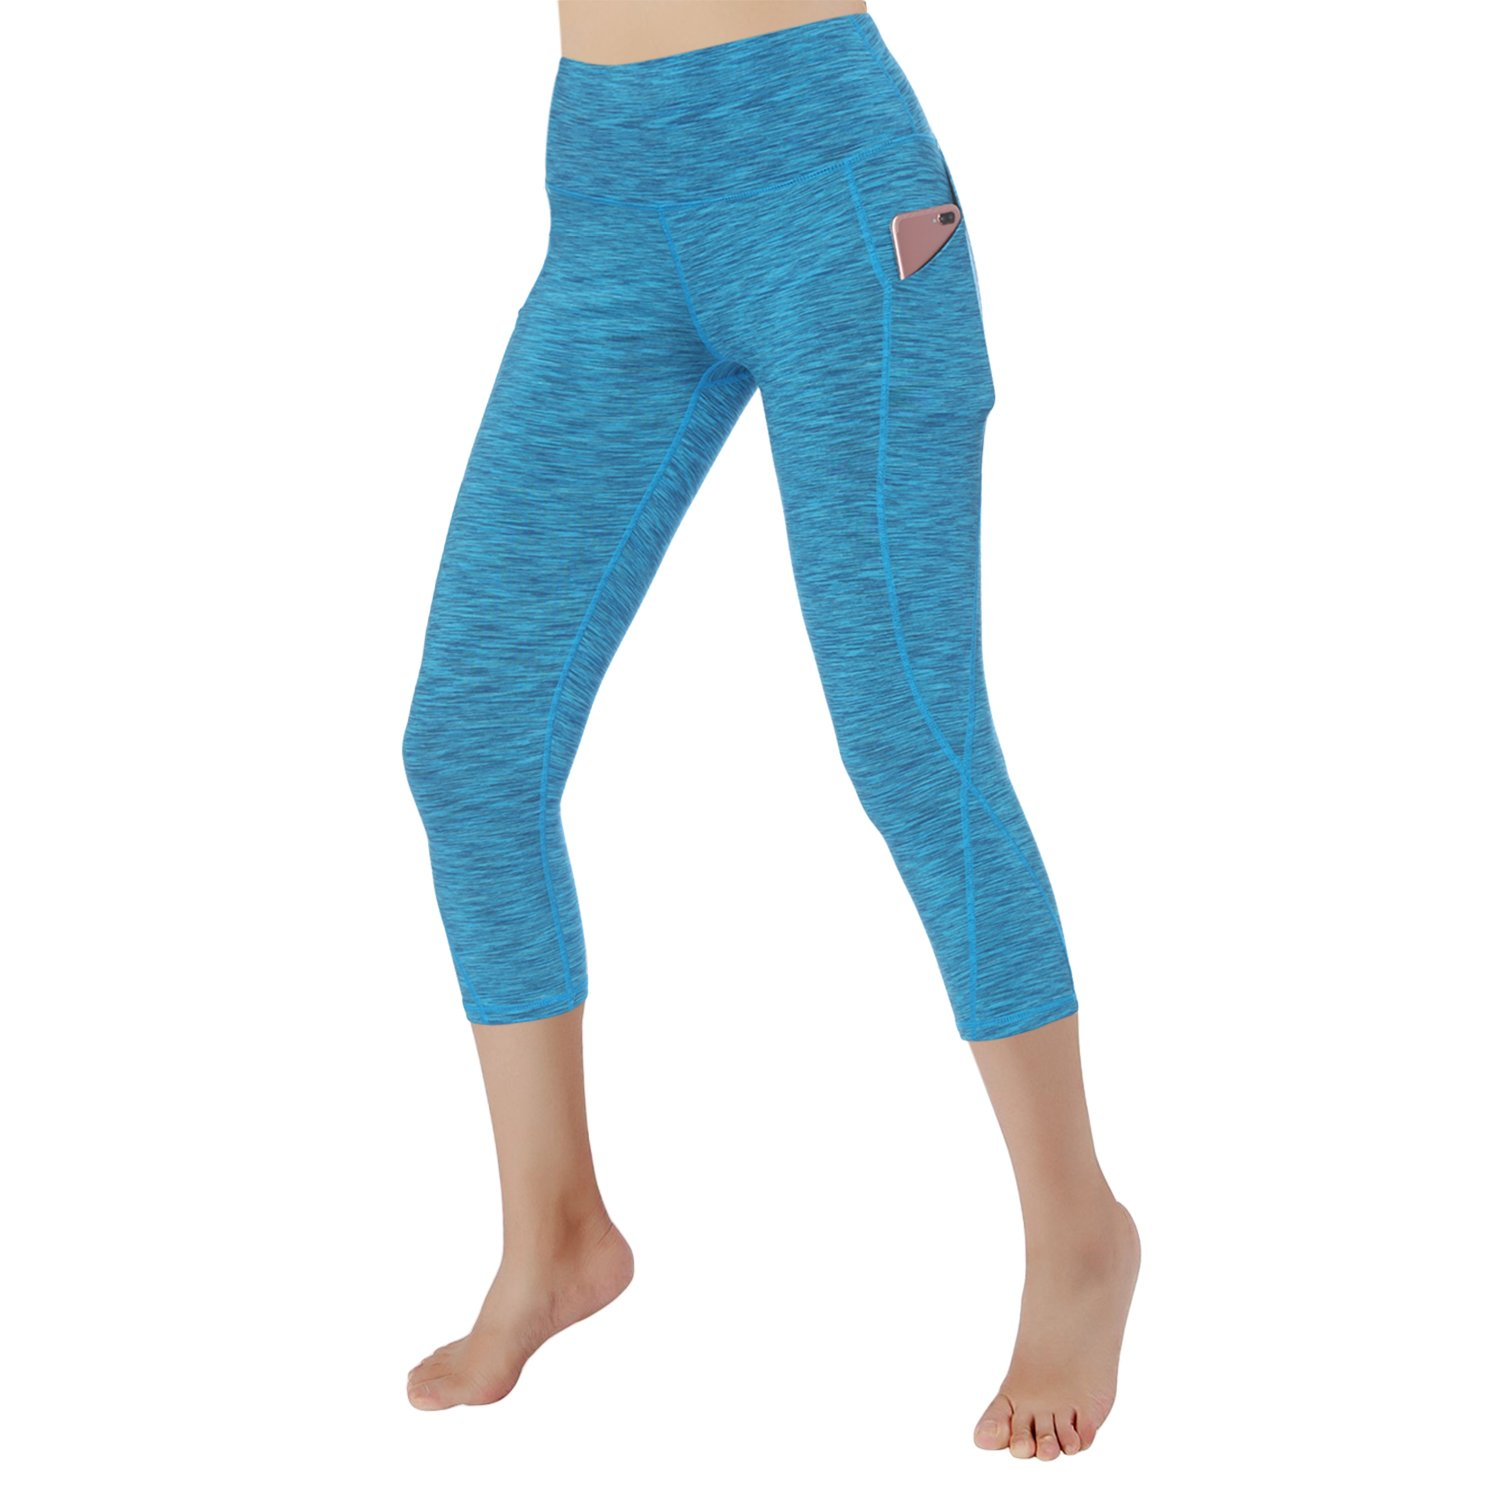 bluee Grey RURING Women's High Waist Yoga Pants Tummy Control 4 Way Stretch Running Pants Workout Leggings